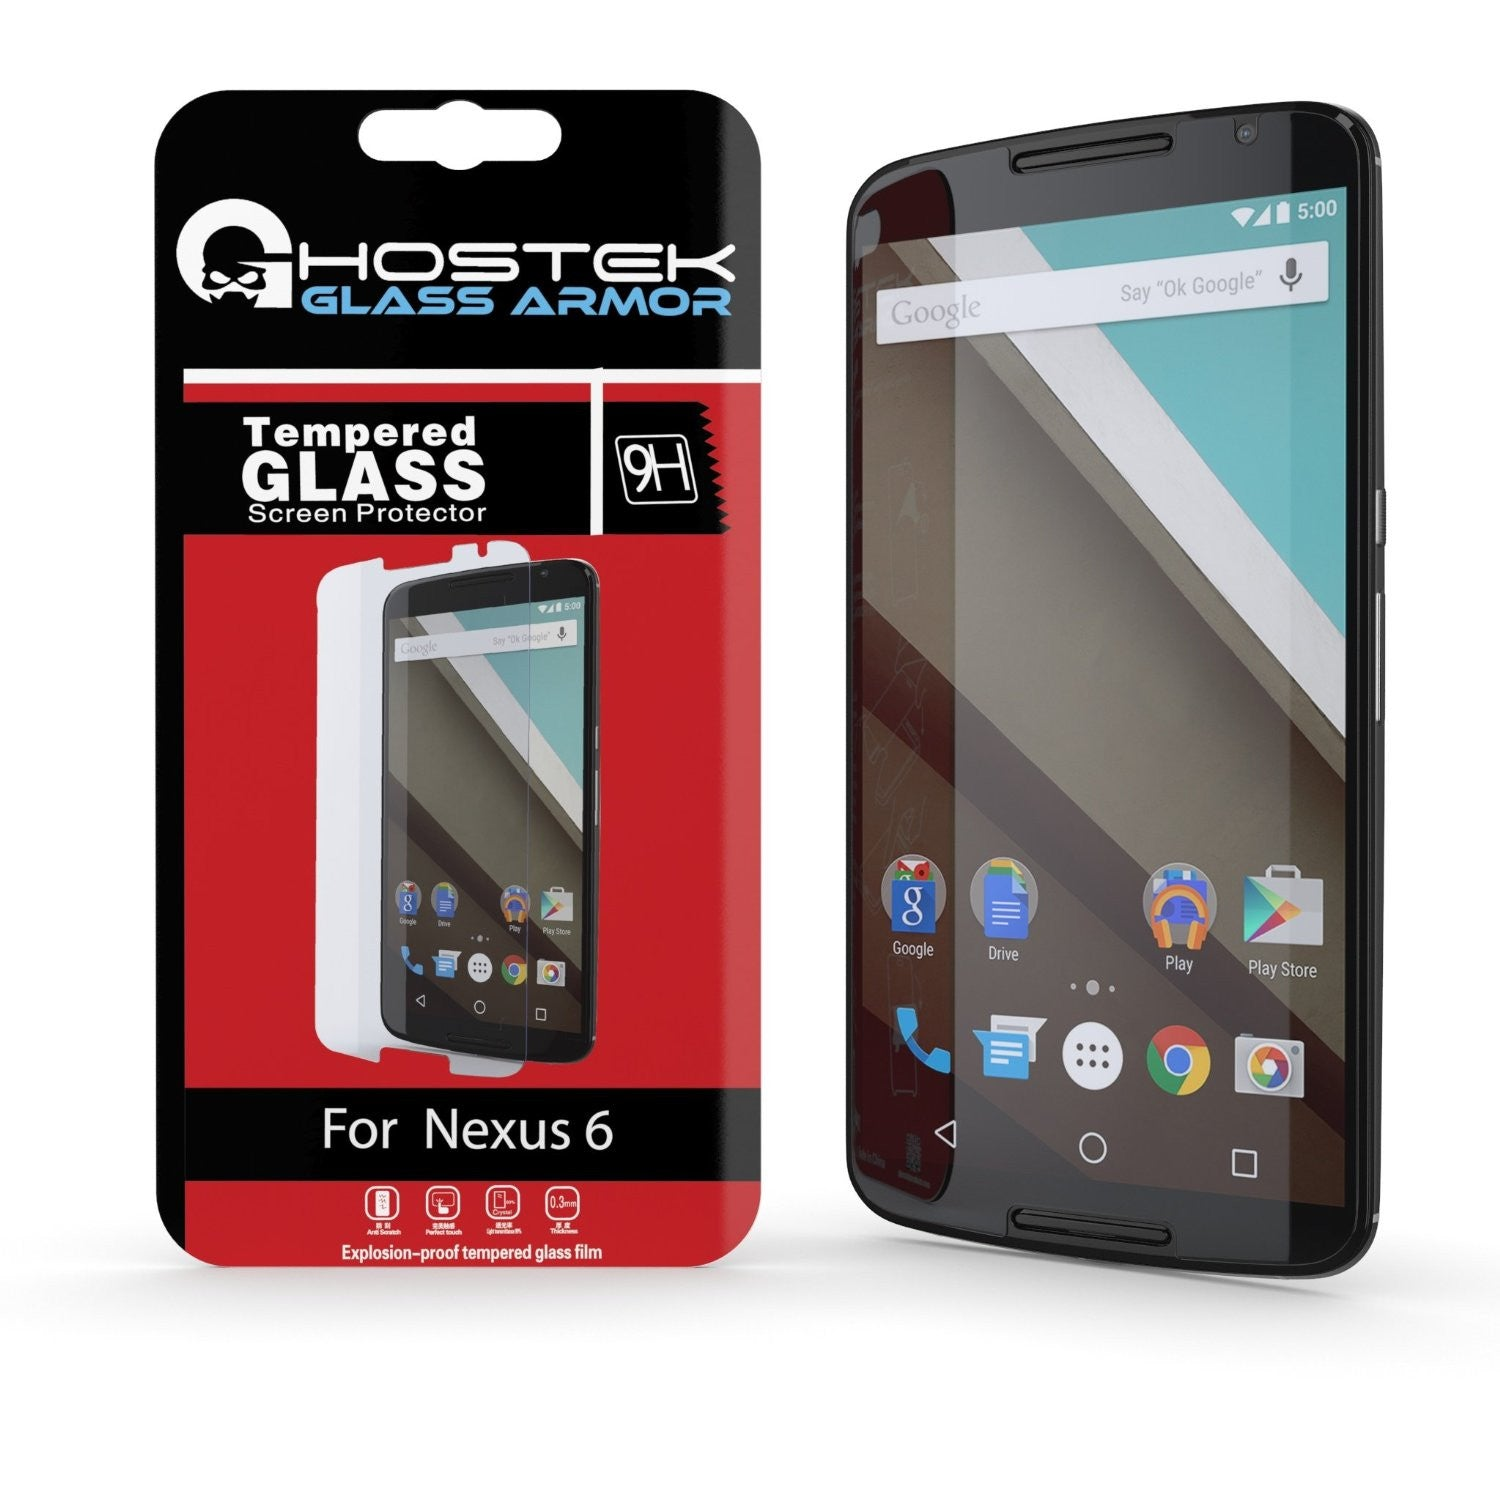 NEXUS 6 Screen Protector, Ghostek Glass Armor Tempered Glass Screen Protector 0.33mm Thick 9H Glass